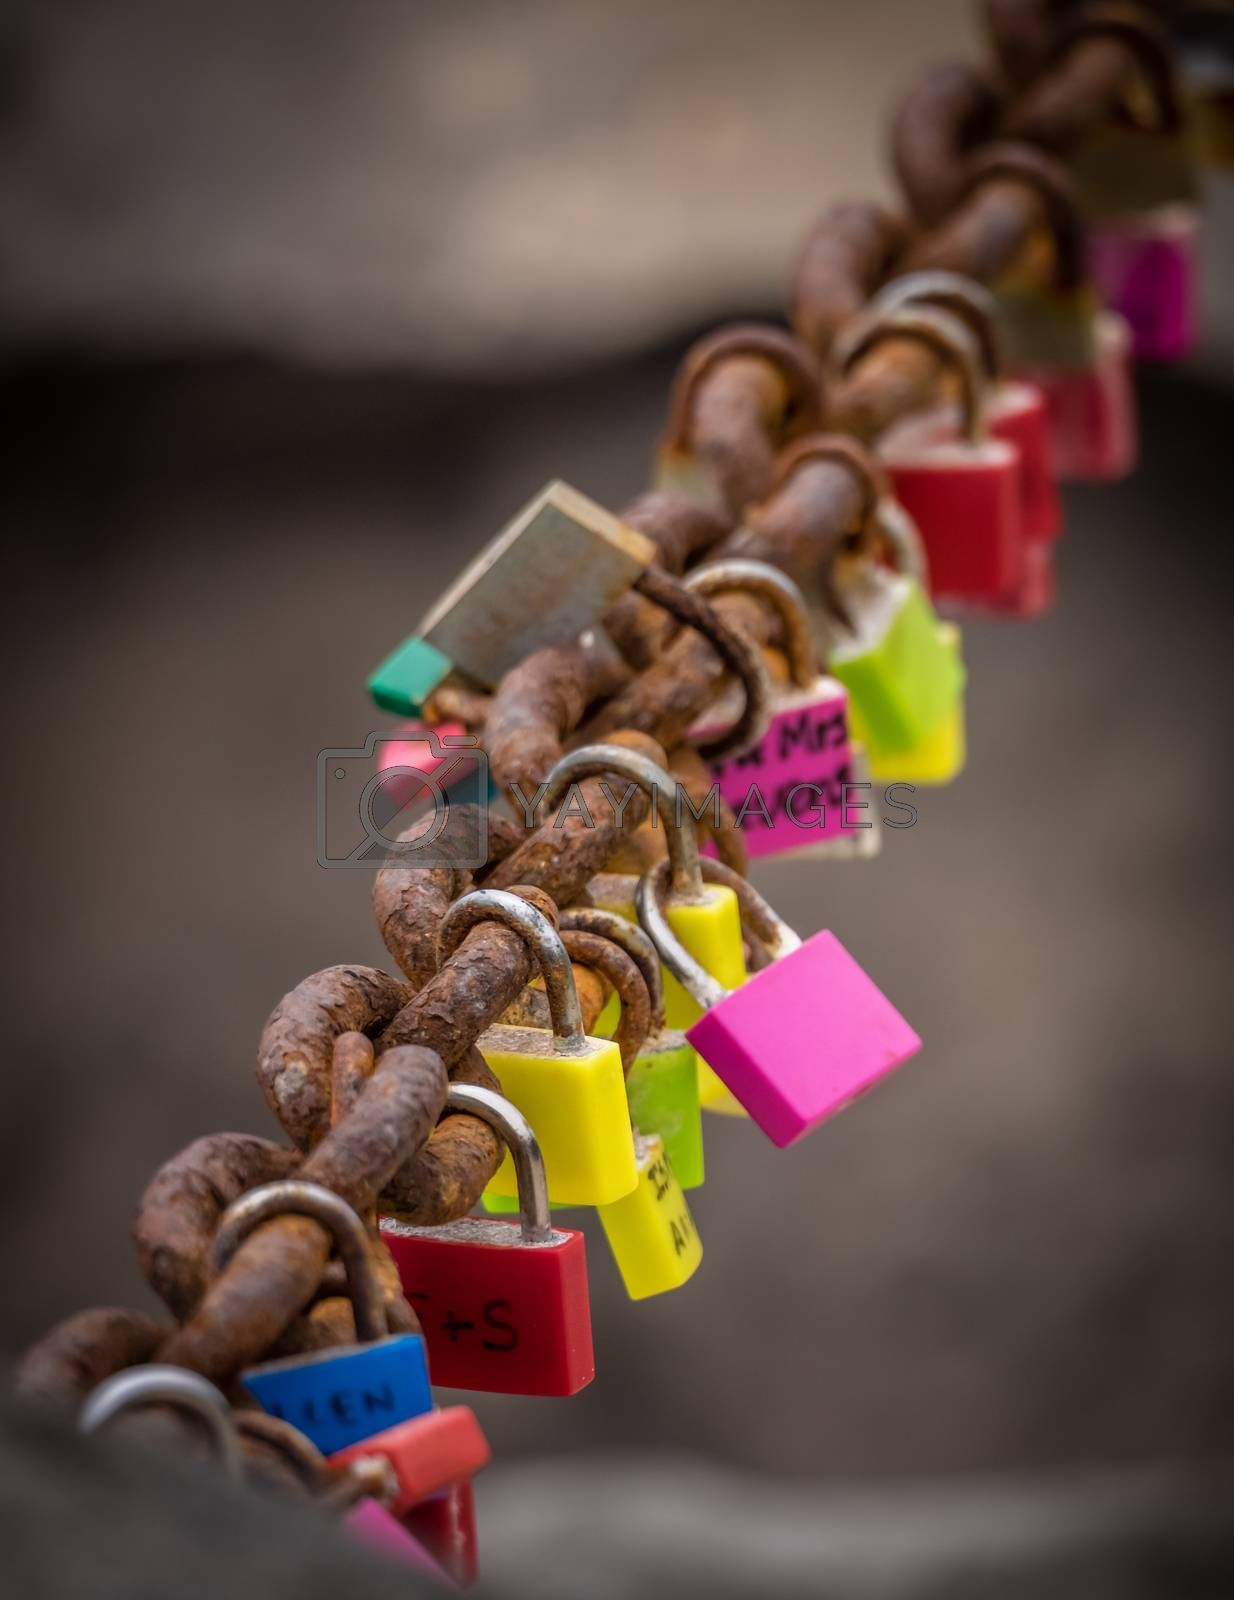 Padlocks with lovers names and initials attached to a chain on the promenade in Playa Blanca, Lanzarote, Canary Islands, Spain. Picture taken 18 April 2016